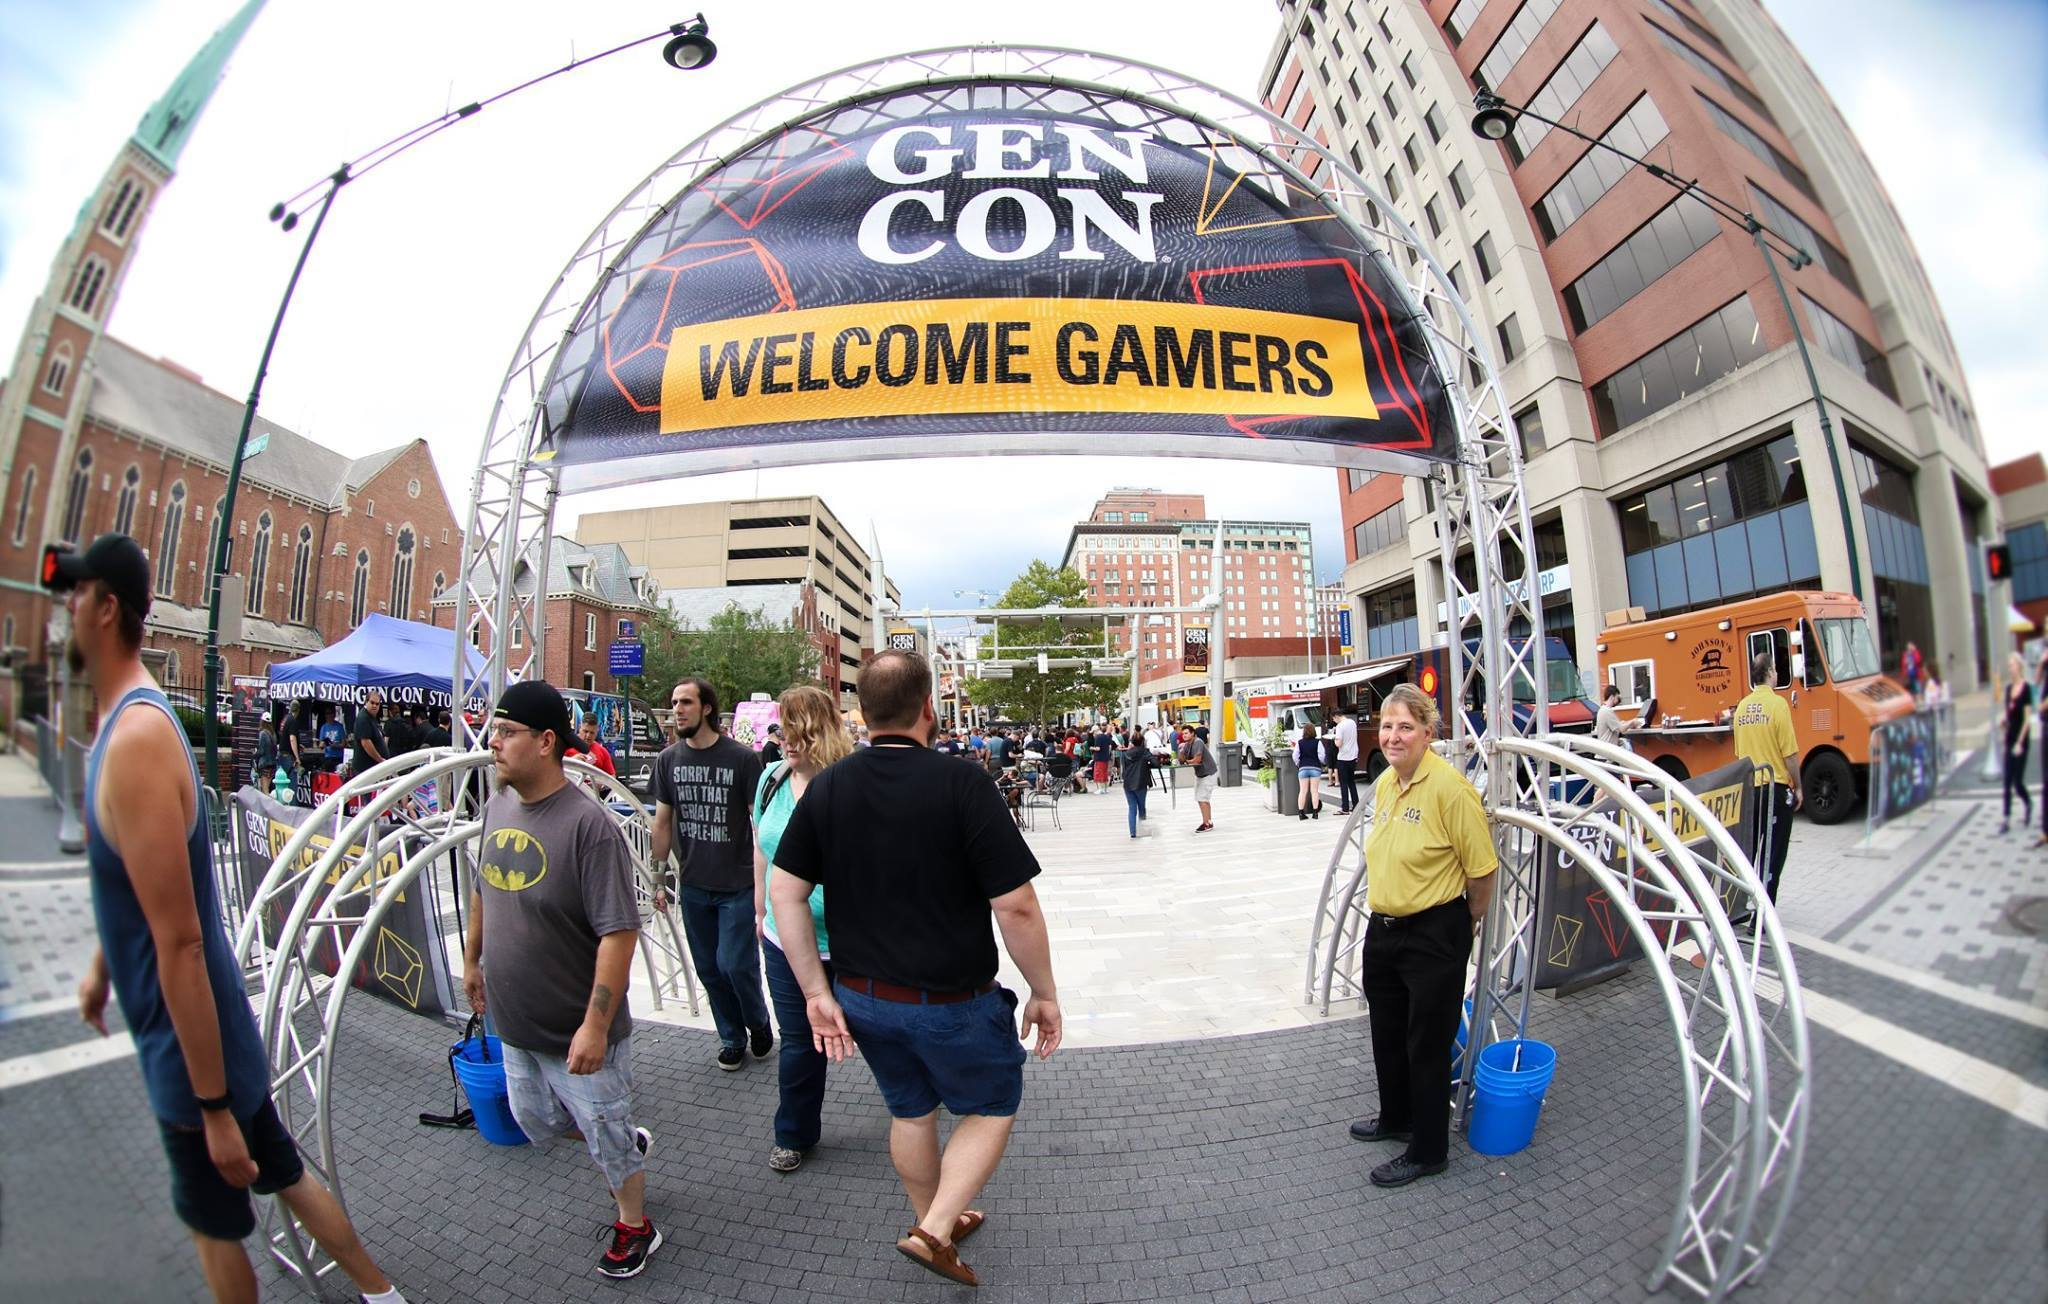 Gen Con 2019 is back to smitten all game-lovers!